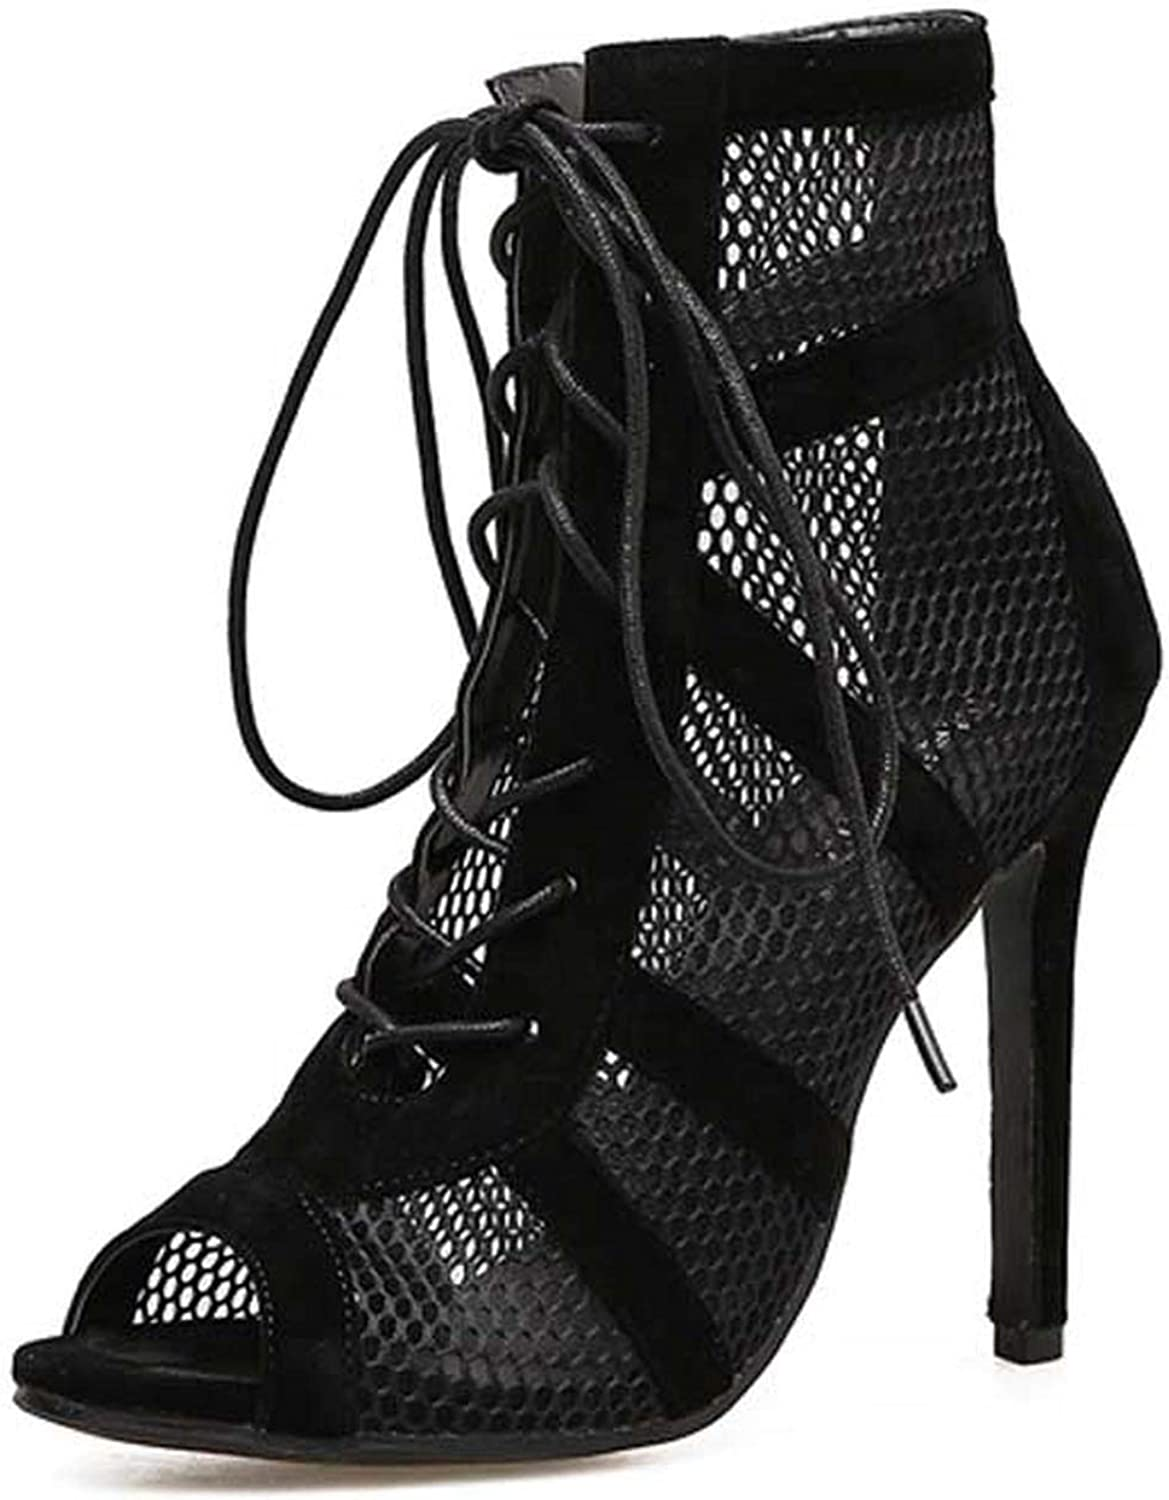 RAINIE002 2019 Fashion Blacksummer Sandals Lace Up Cross-Tied Peep Toe High Heel Ankle Strap Net Surface Hollow Out Sandals